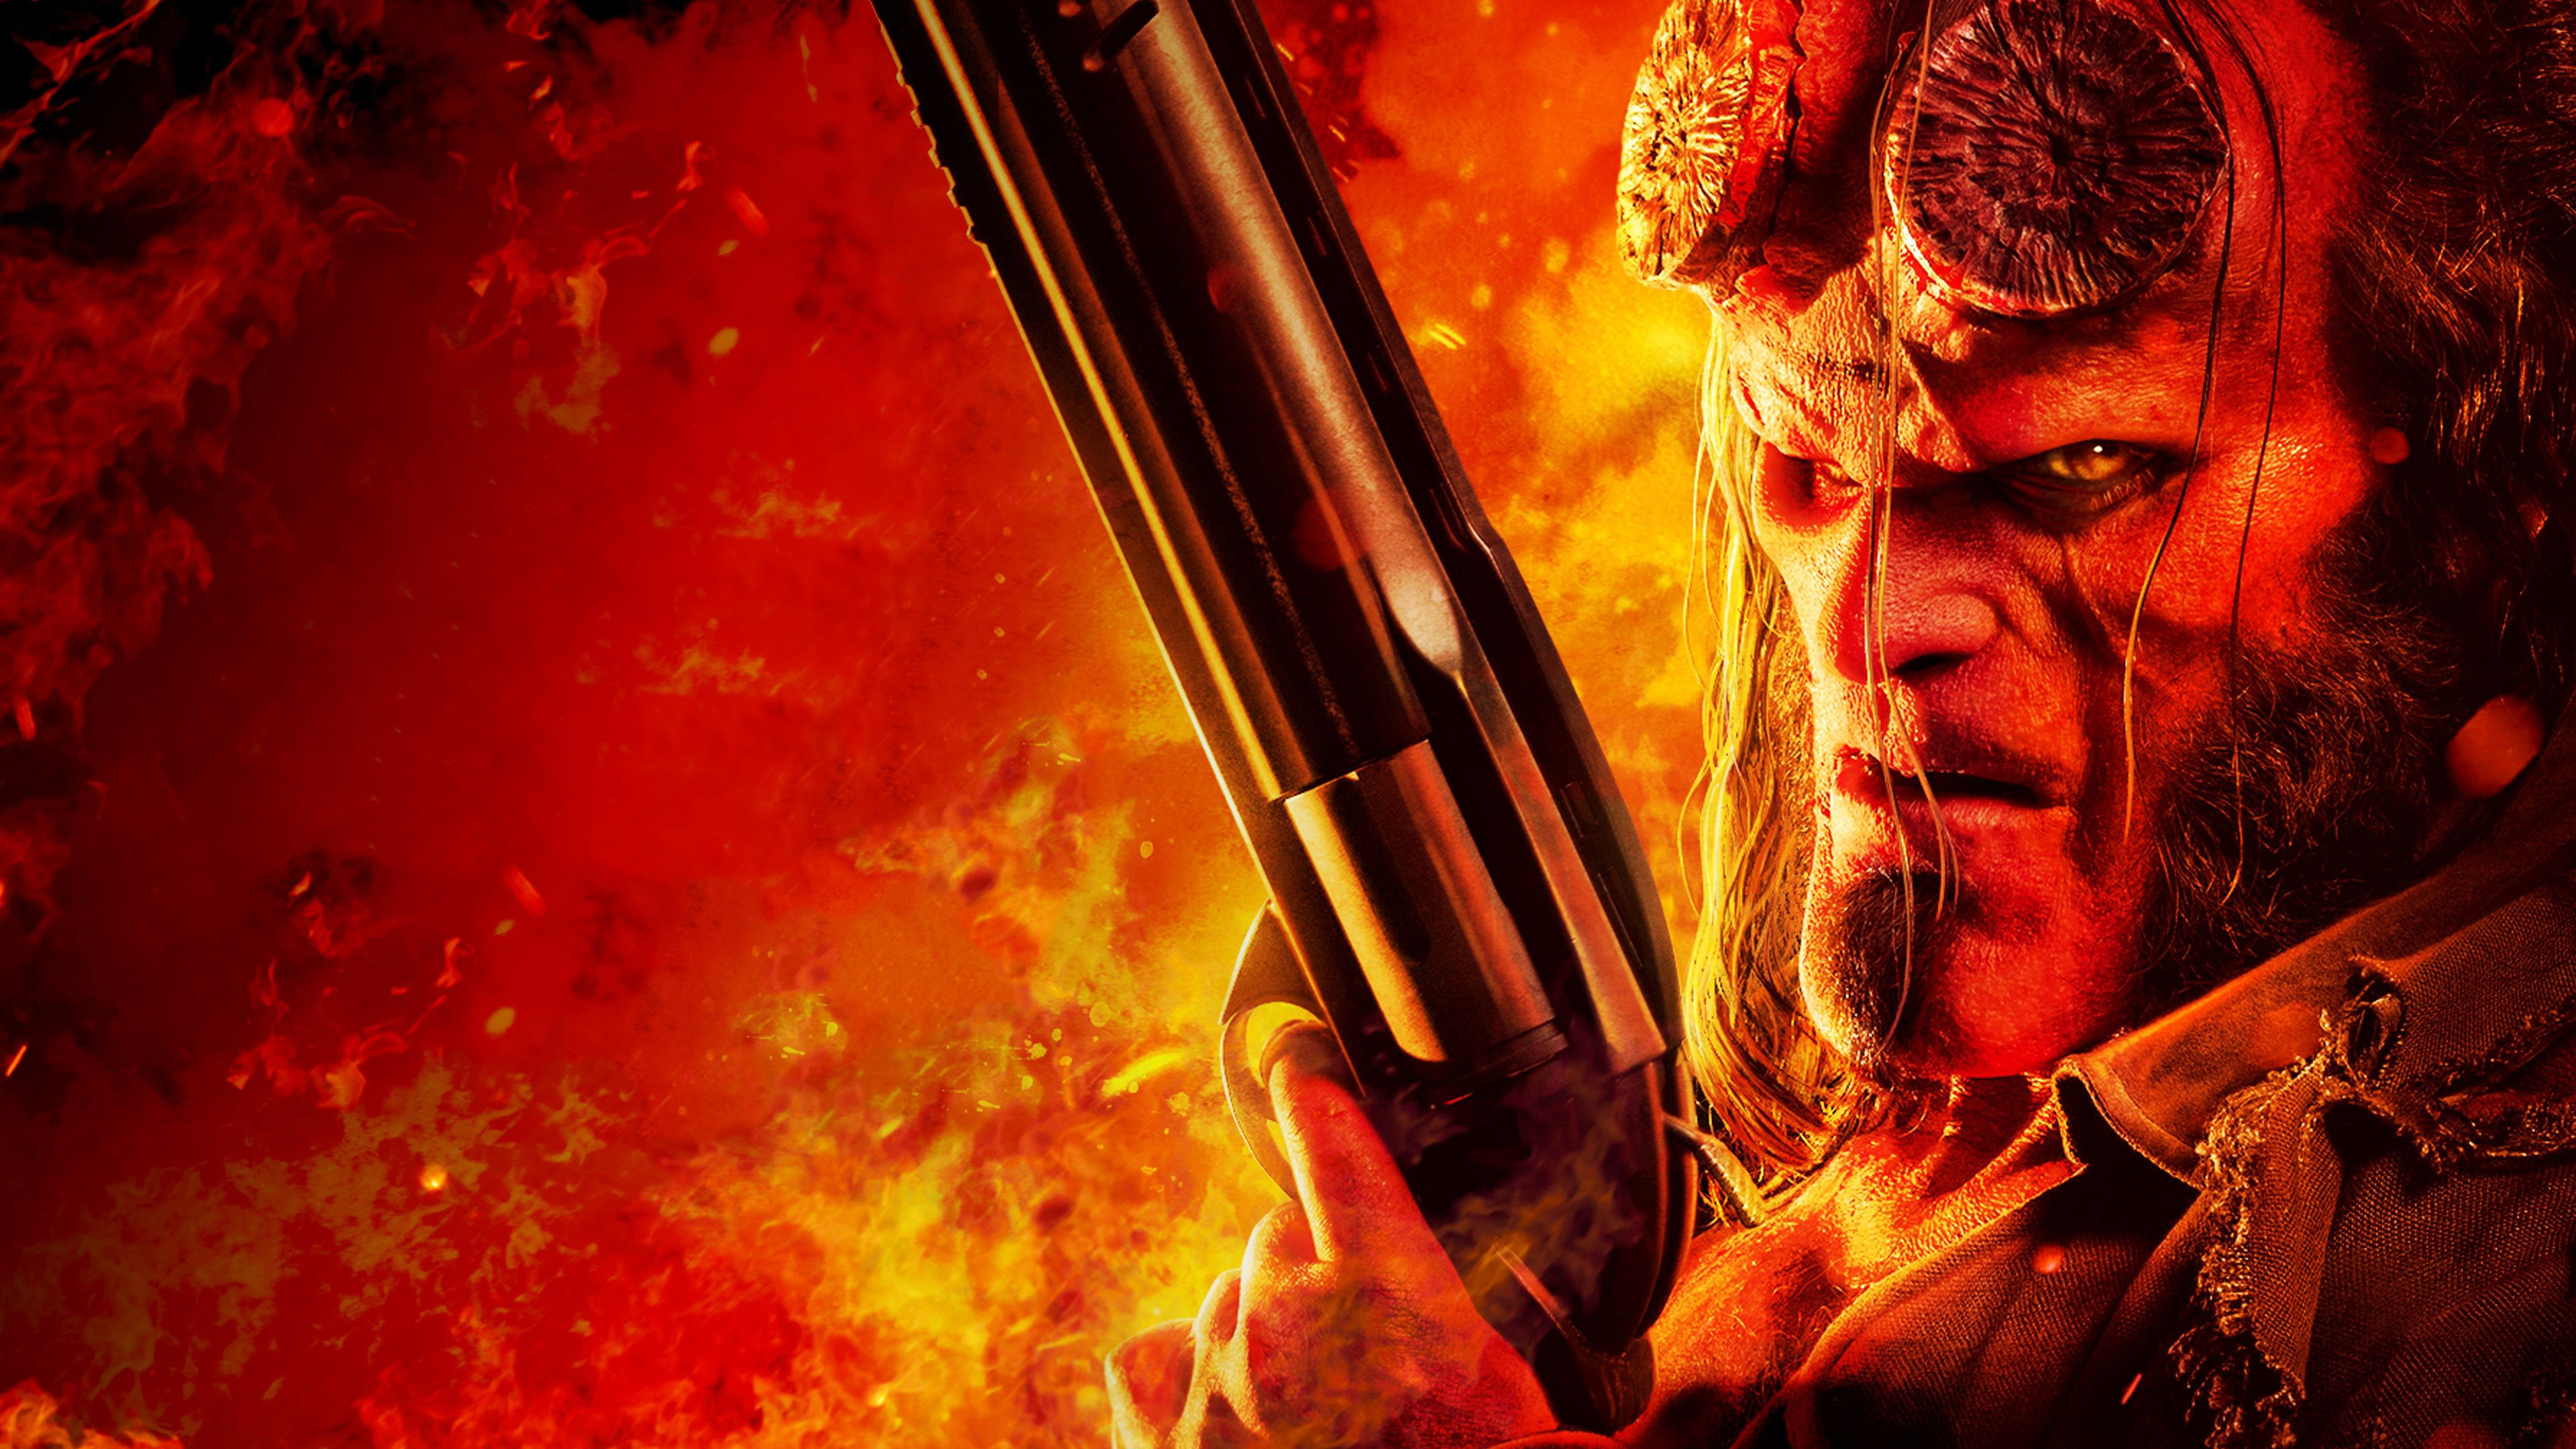 hellboy 2019 new 1563220878 - Hellboy 2019 New - movies wallpapers, hellboy wallpapers, hd-wallpapers, 4k-wallpapers, 2019 movies wallpapers